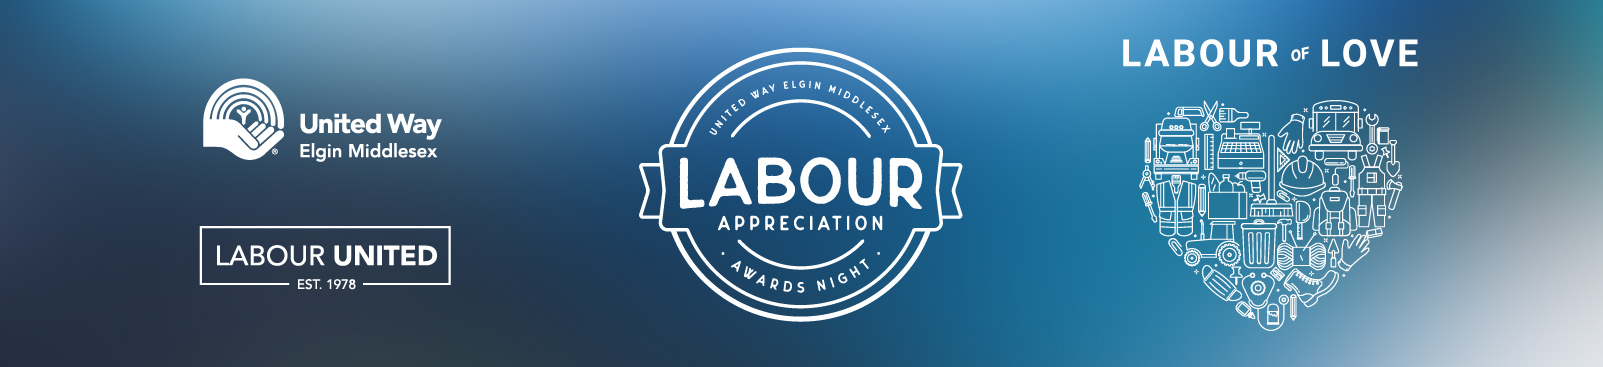 Labour Appreciation Awards Night, Labour of Love thin banner